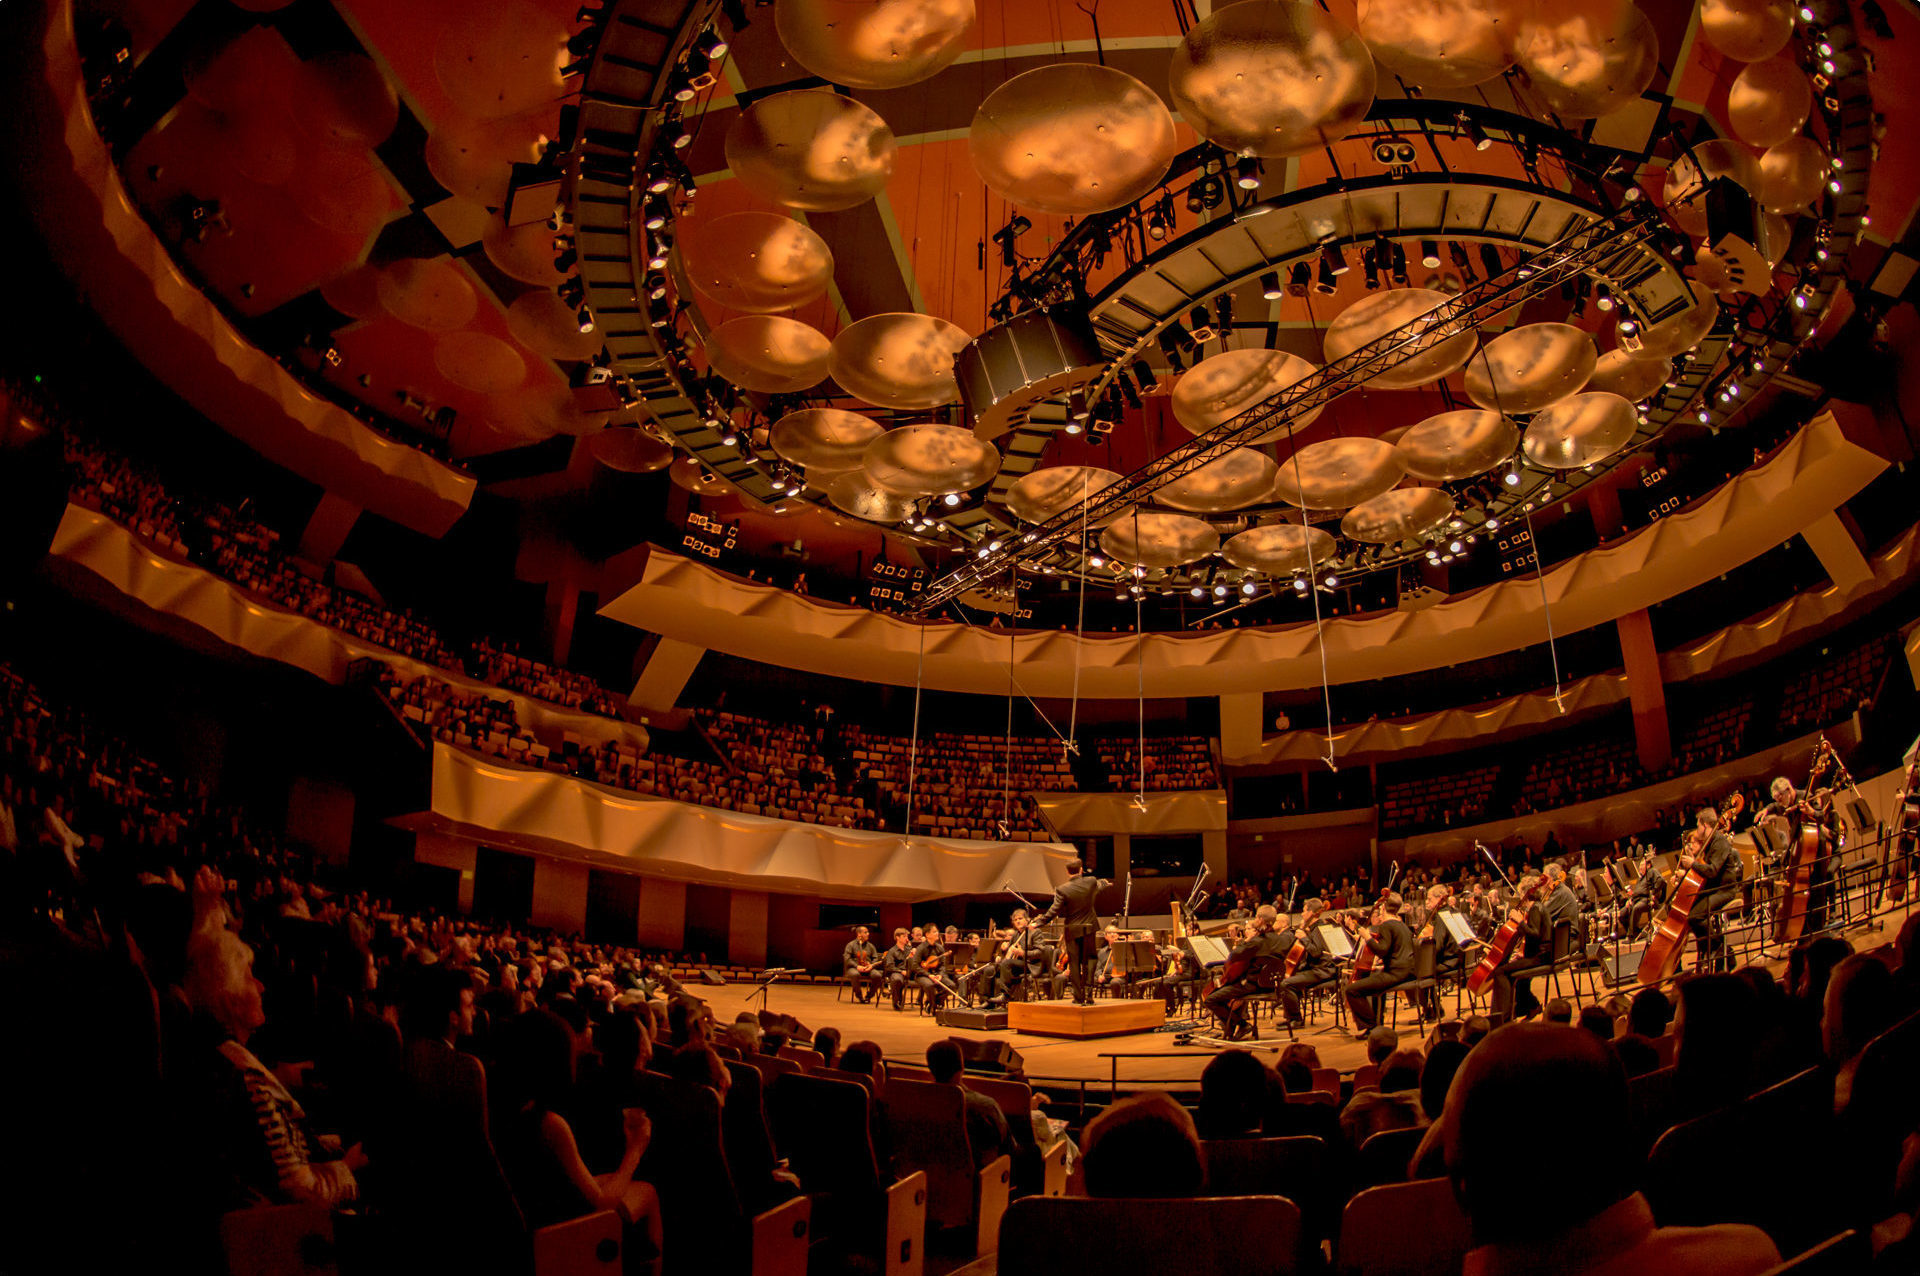 Boettcher Concert Hall lights dimmed, with full audience and symphony on stage